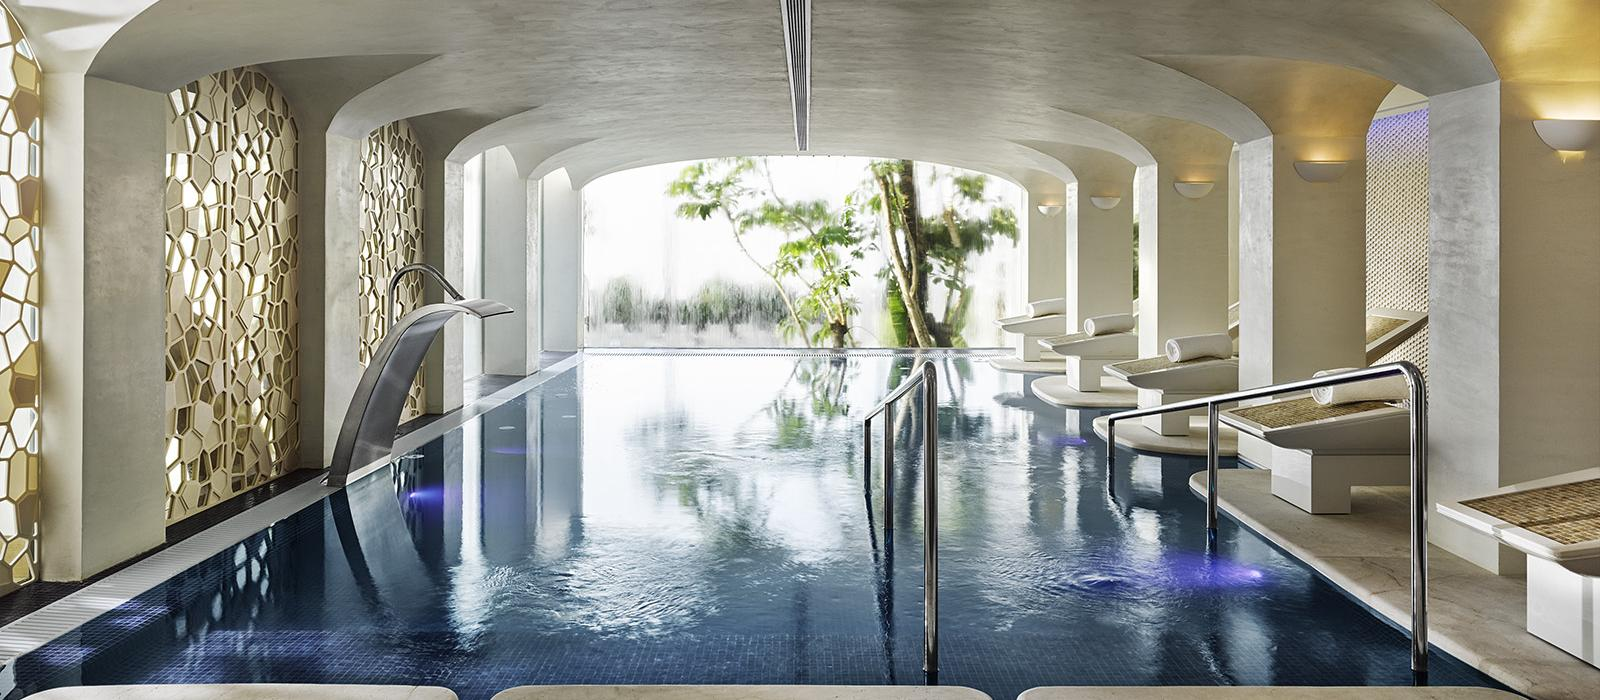 xl-spain-marbella-hotel-puenta_romano_marbella-six_senses_spa-pool.jpg